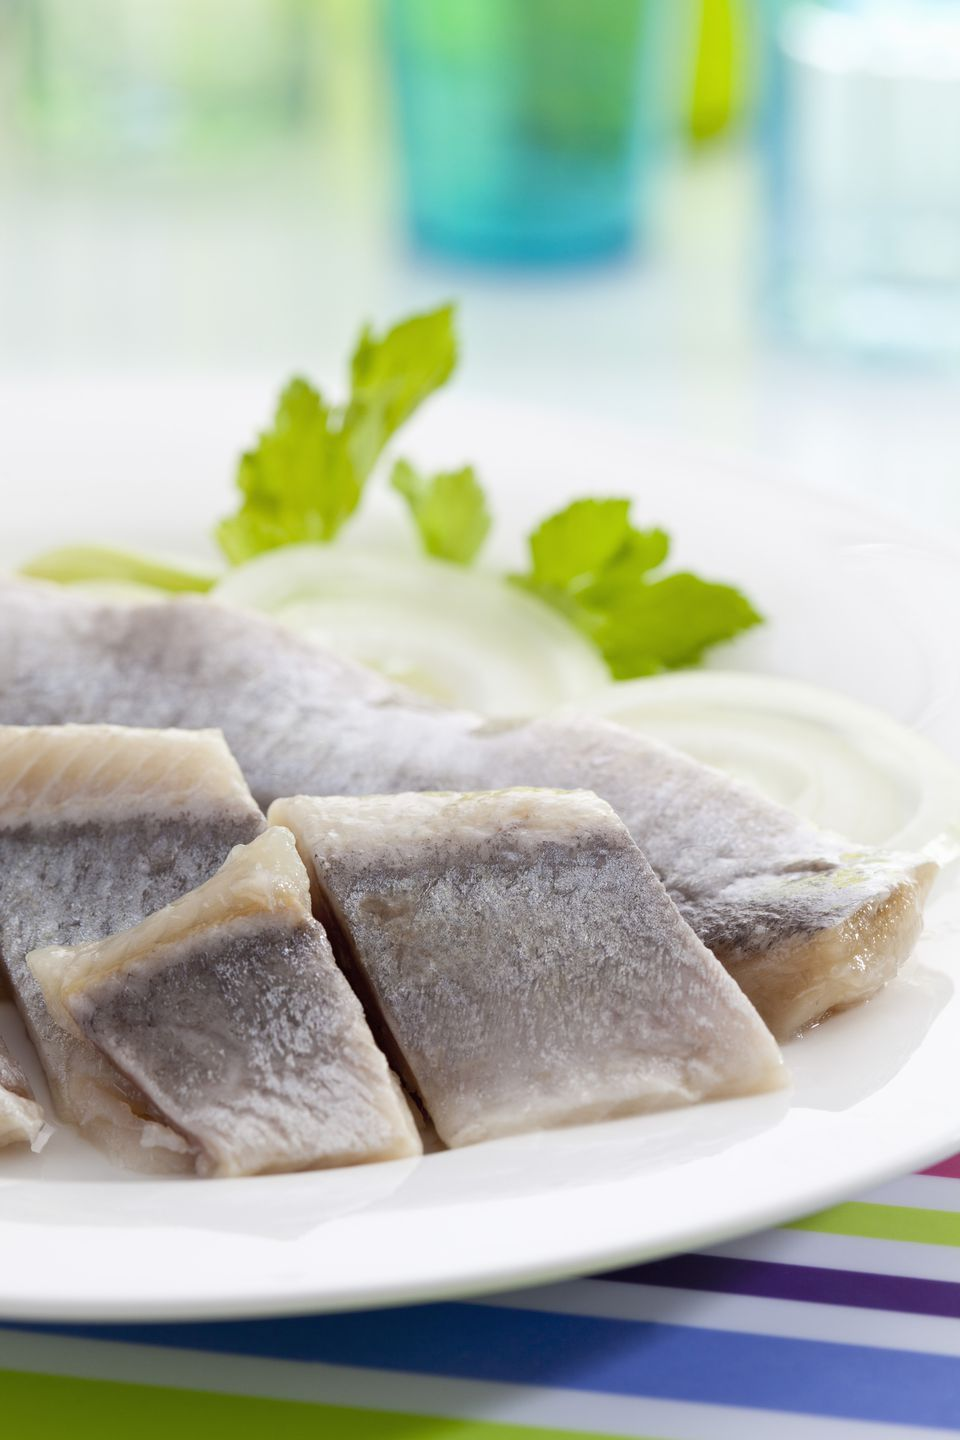 Herring in oil with onions on plate